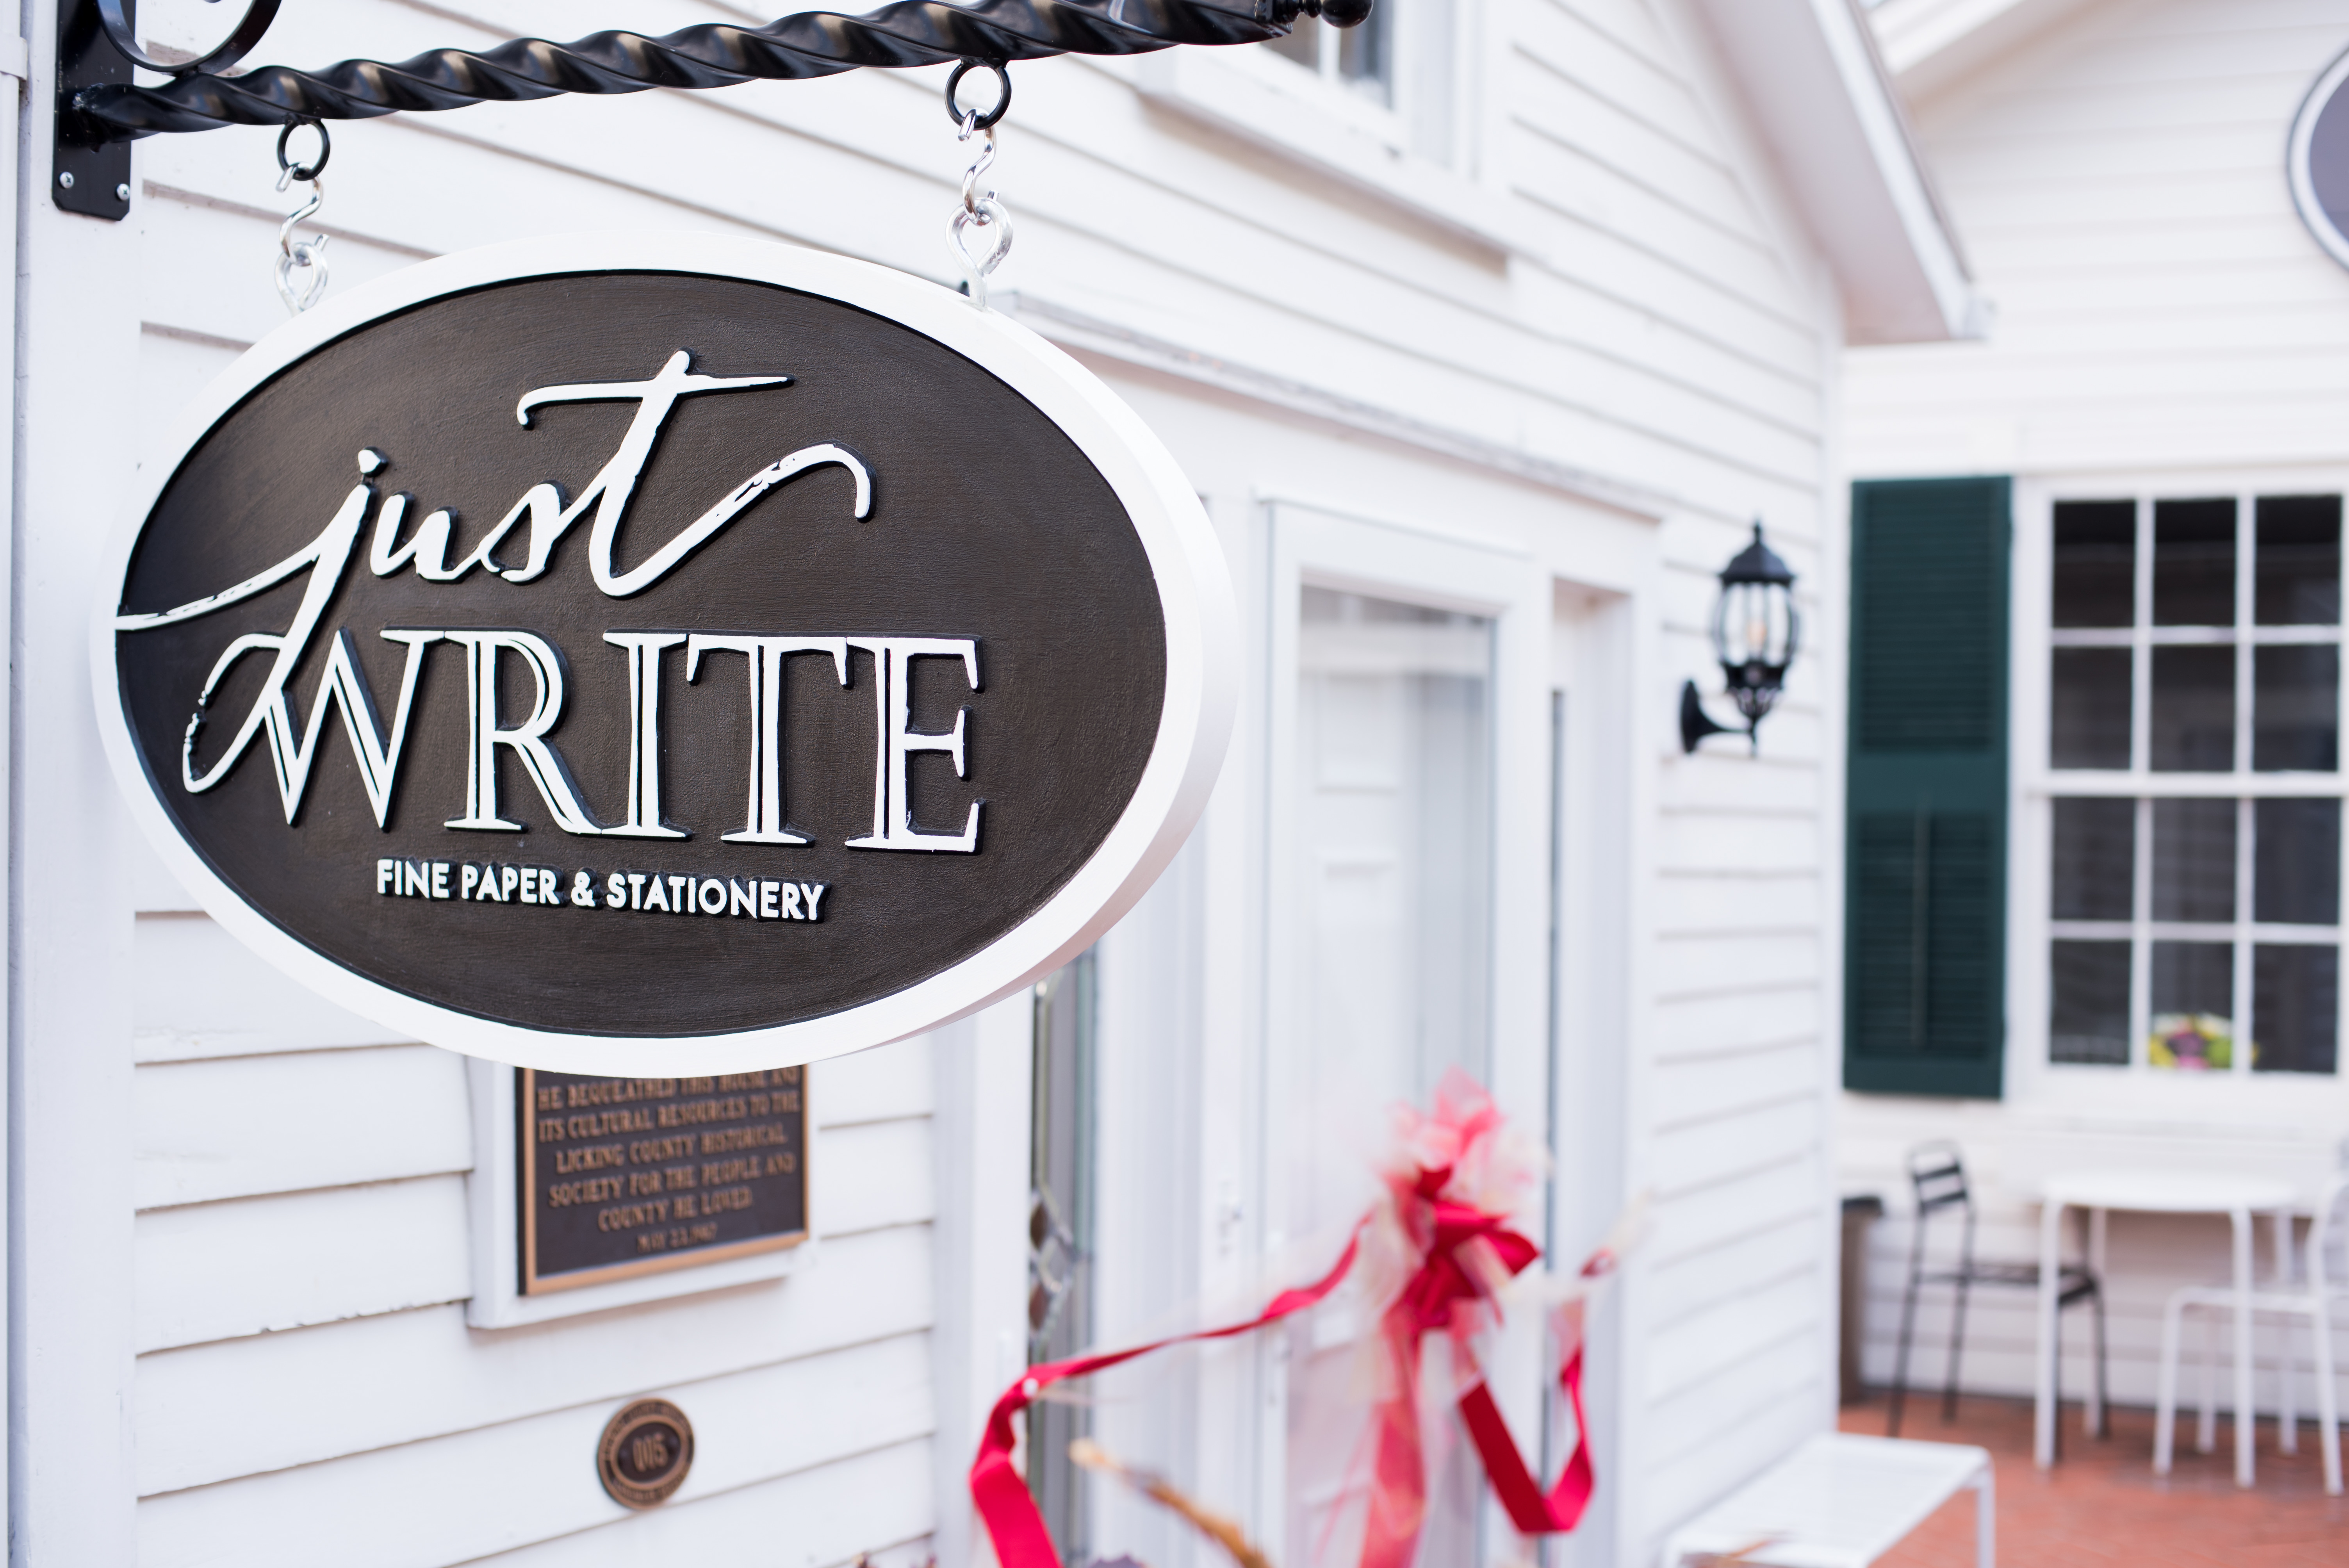 Just WRITE Grand Opening